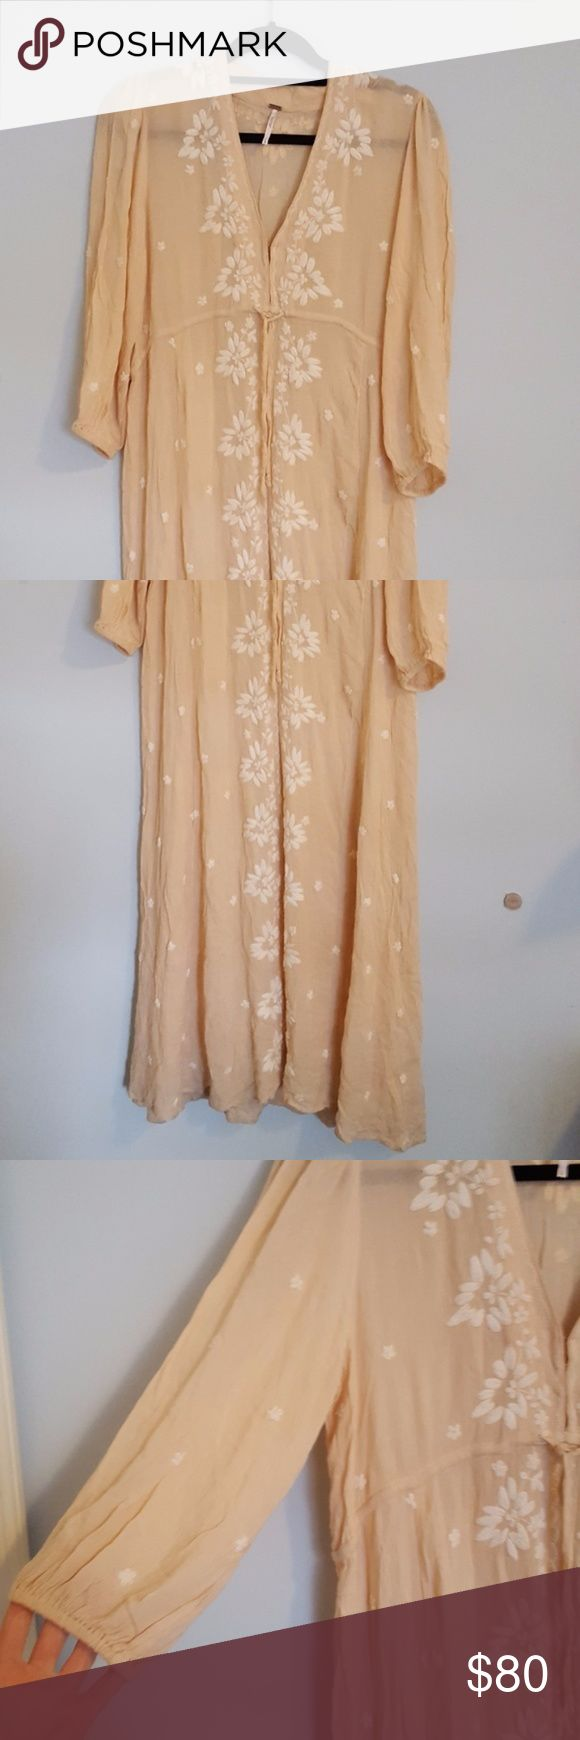 Free people boho maxi dress Peach maxi dress from free people. Floral embroidery. 100% rayon. adjustable tie waist Free People Dresses Maxi